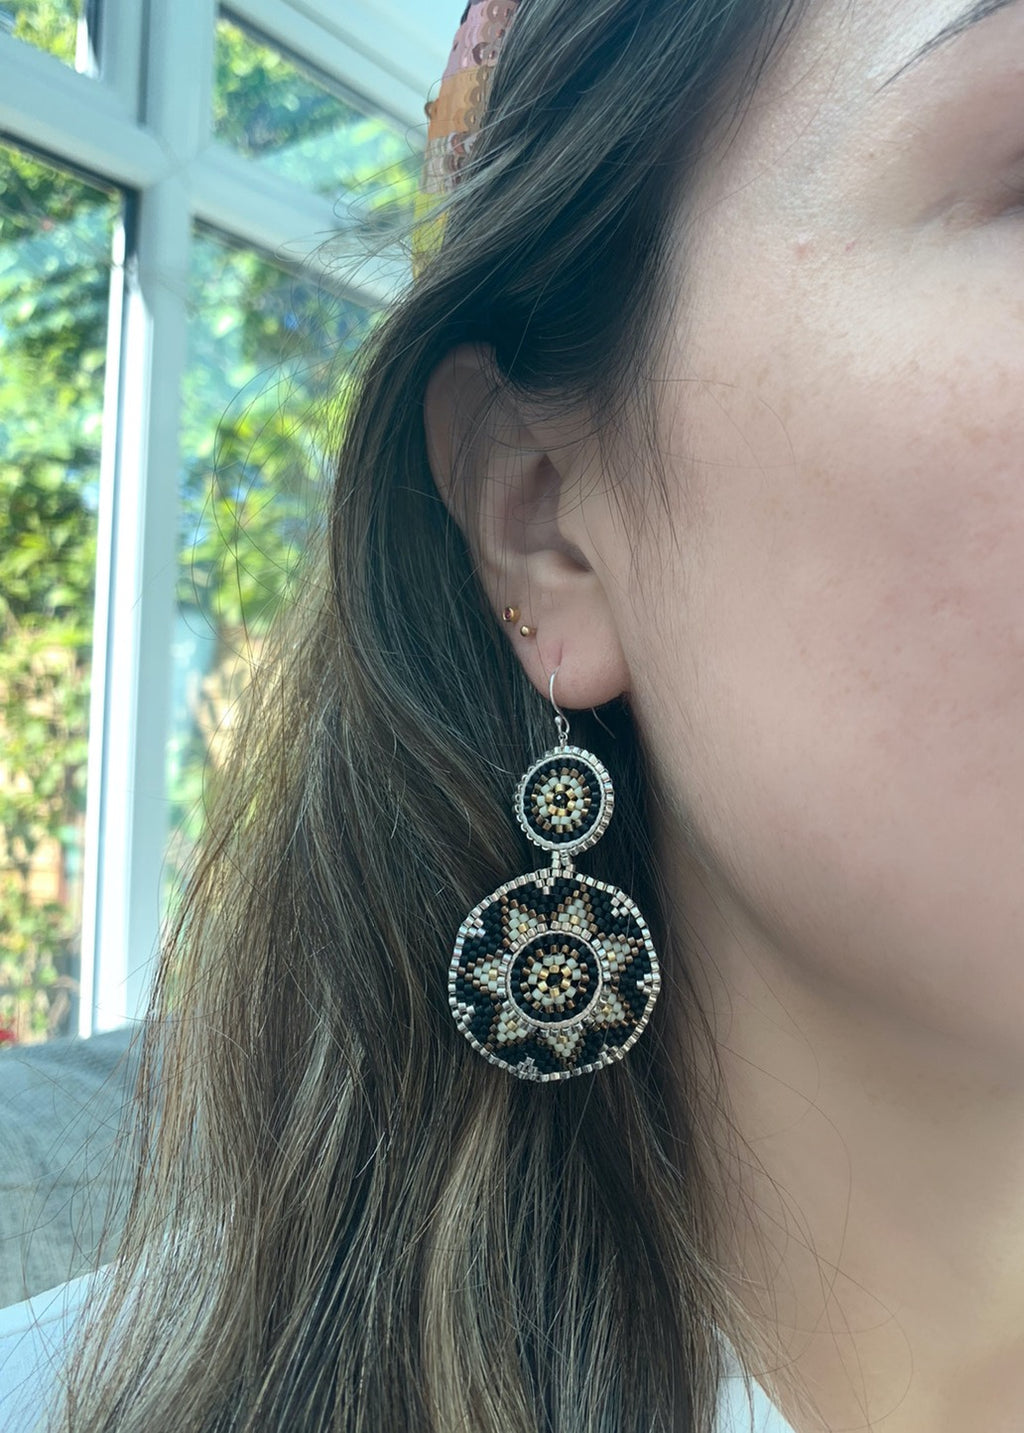 WINTER EARRINGS IN NEUTRAL COLORS